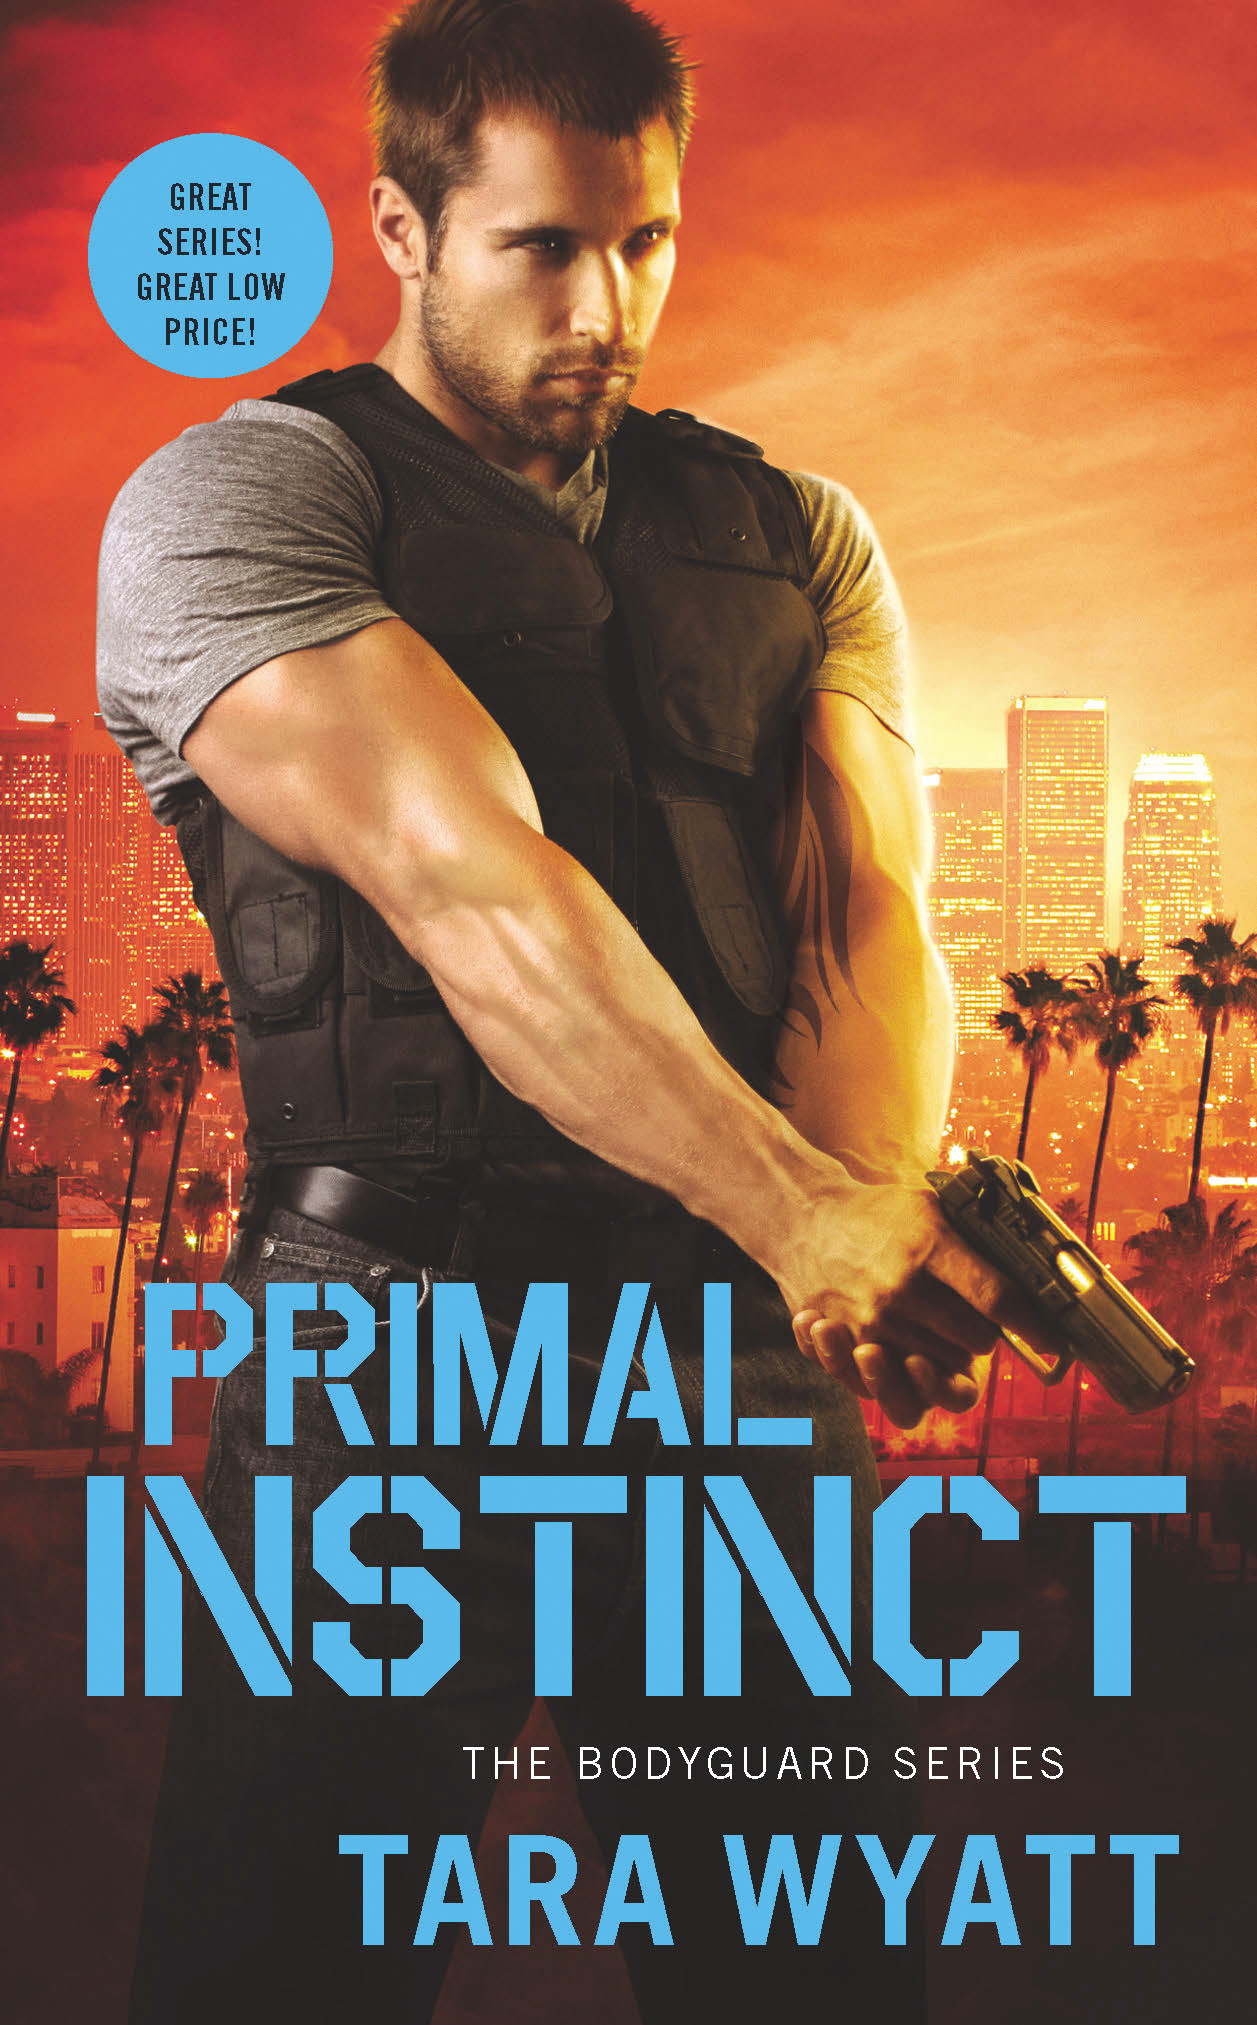 Primal Instinct by Tara Wyatt The Bodyguard Series Book 2 Romantic Suspense